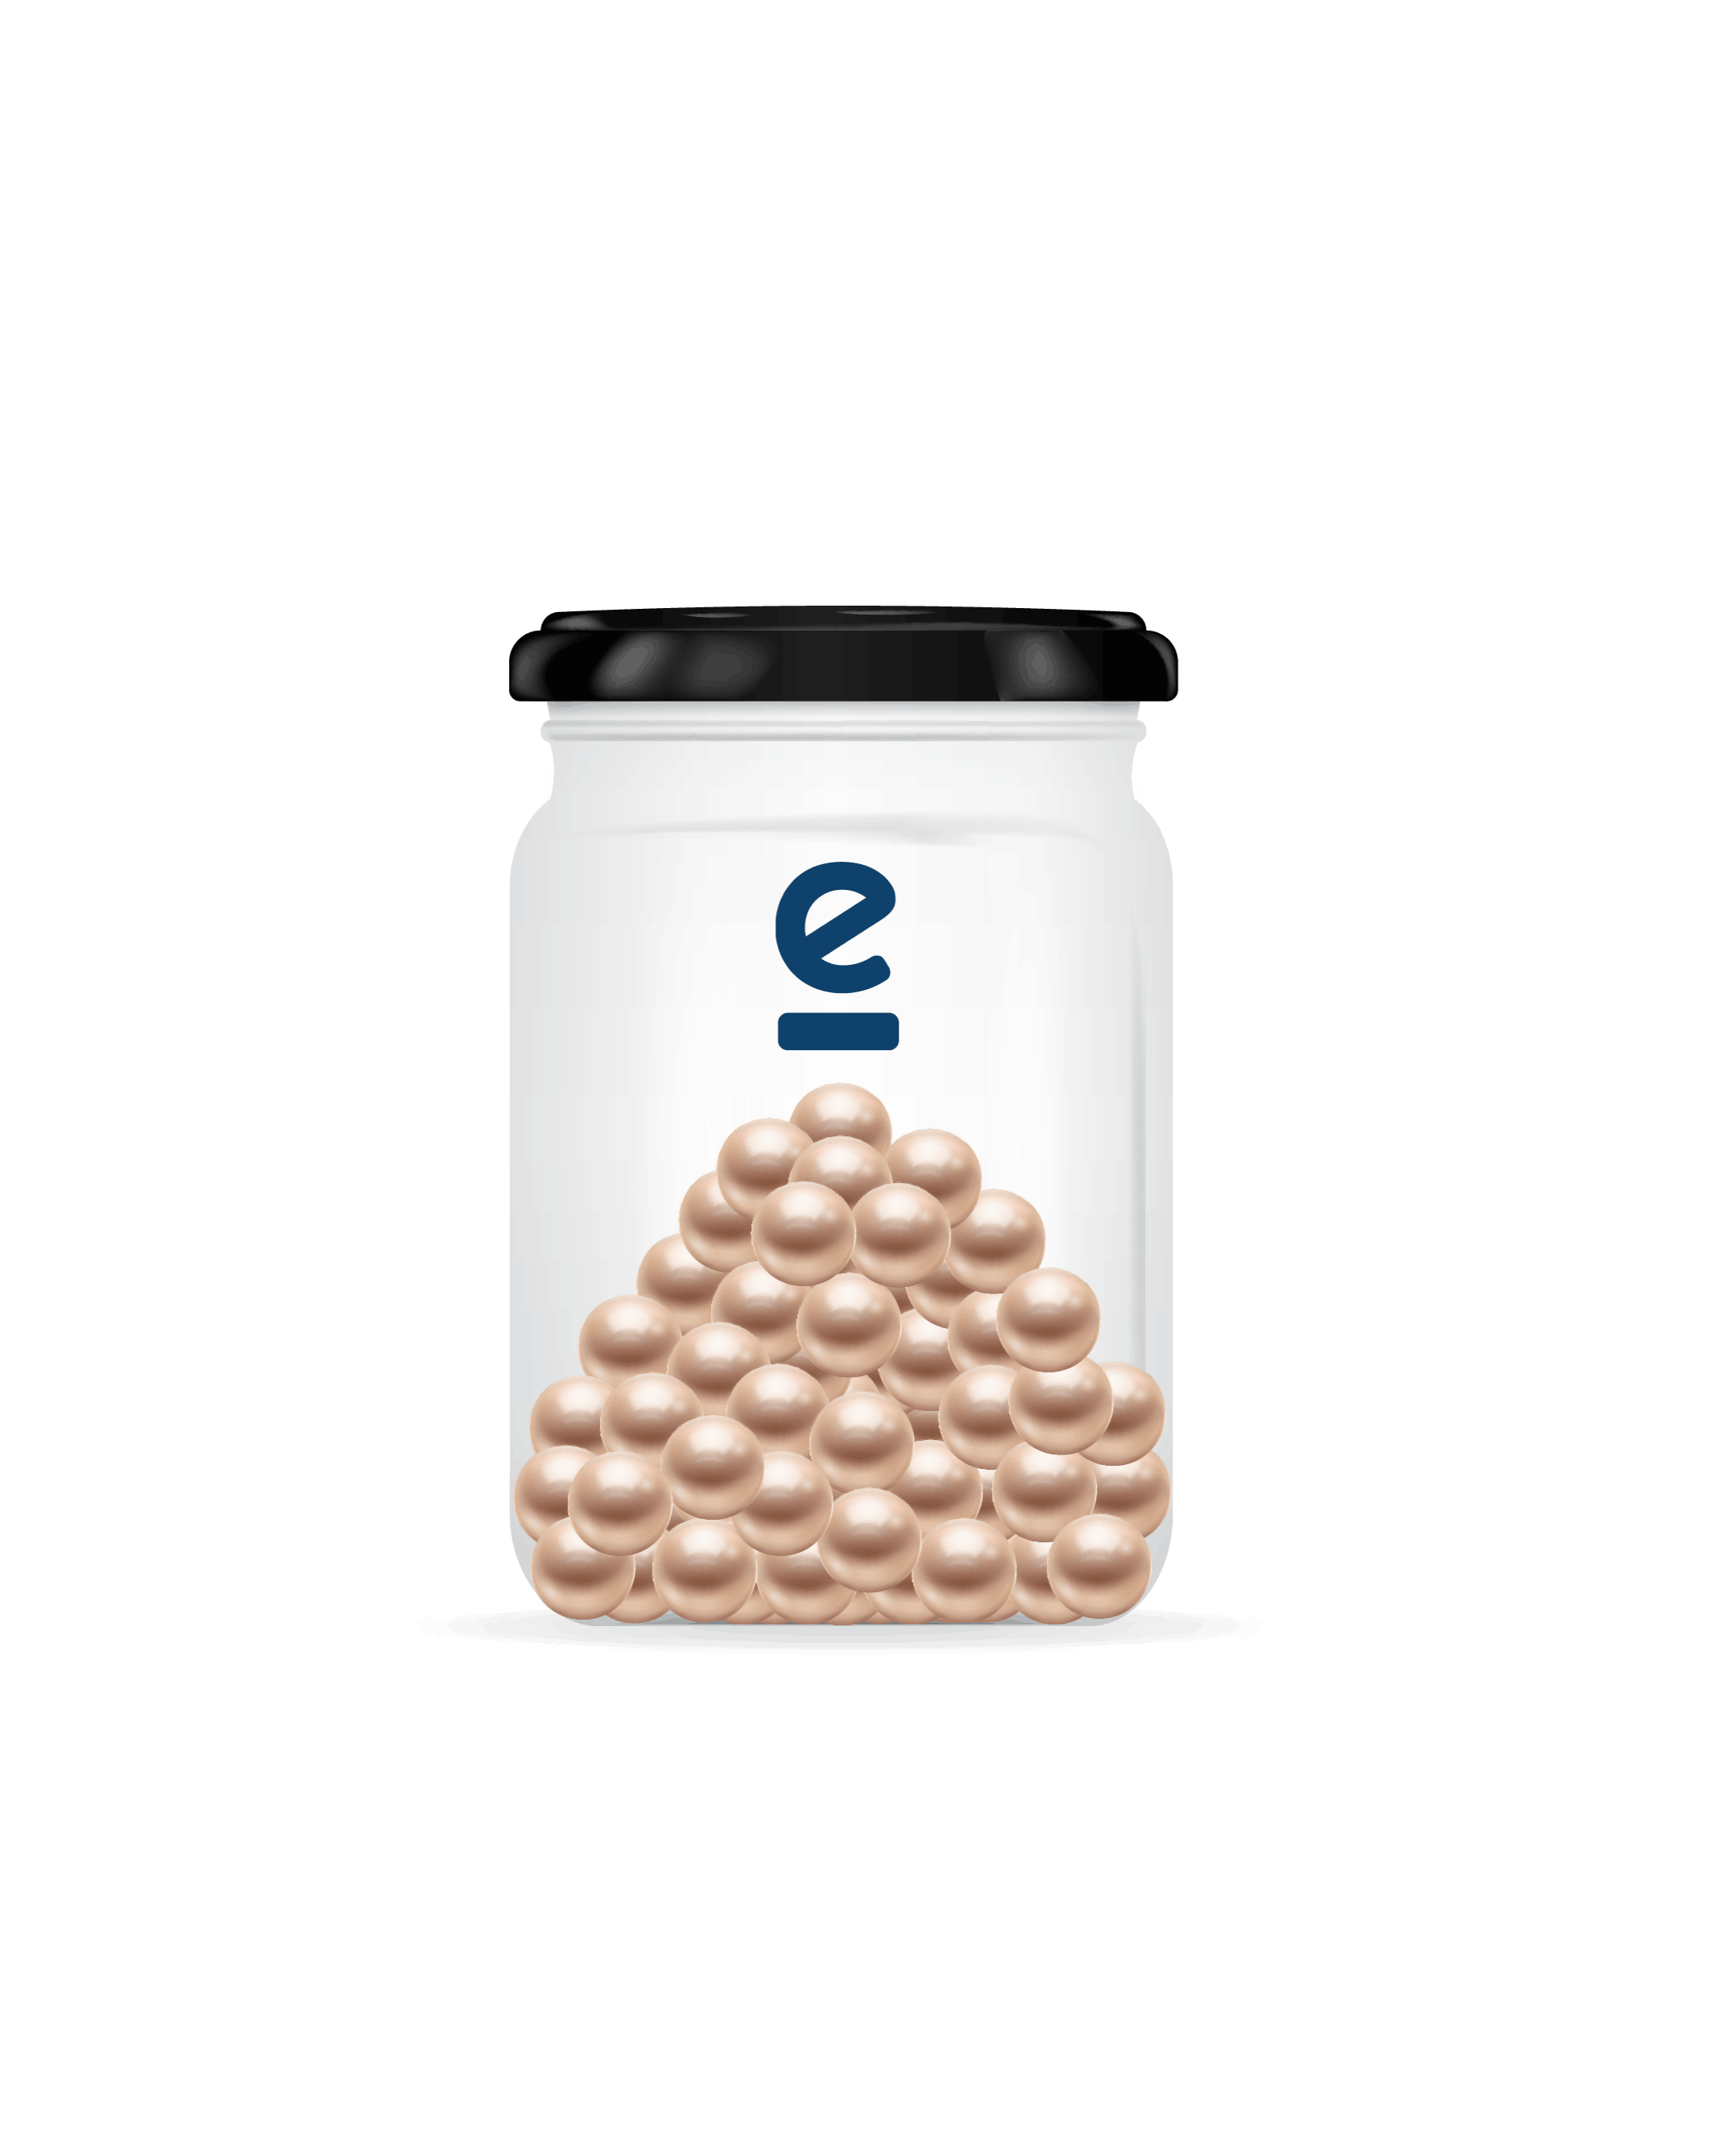 a jar with higher momme weighting